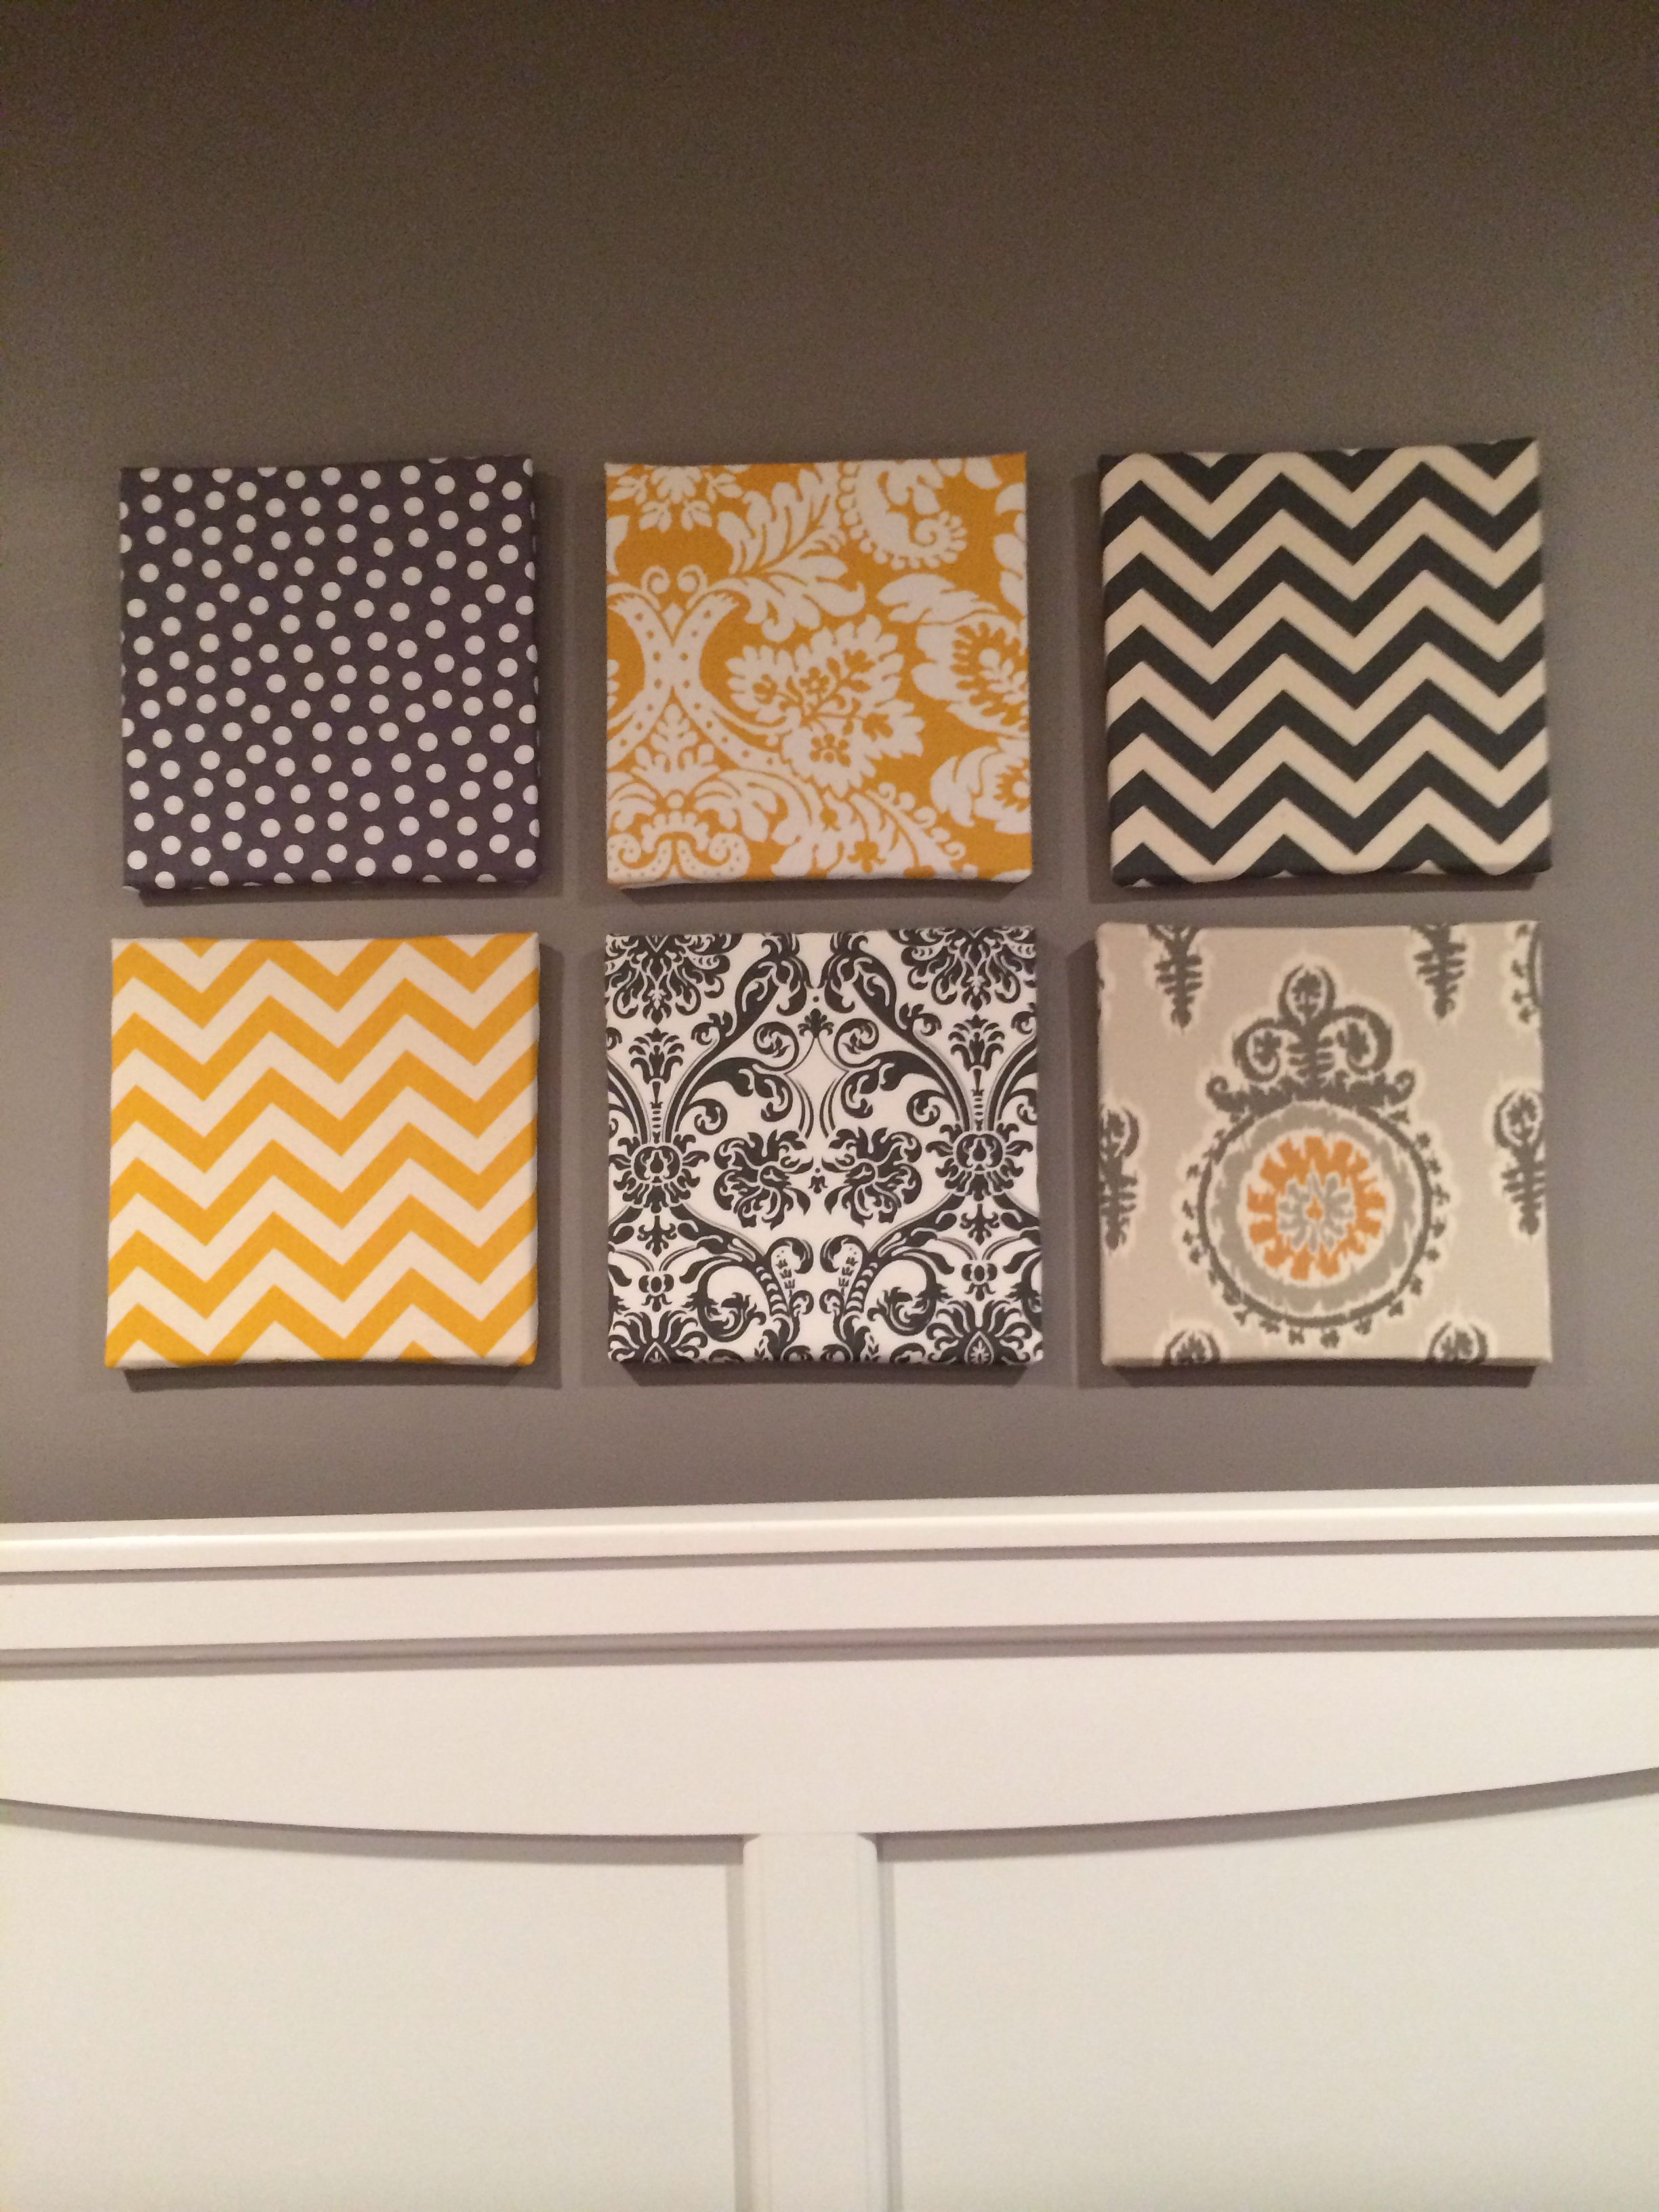 My fabric over canvas wall art for my gray and yellow themed room